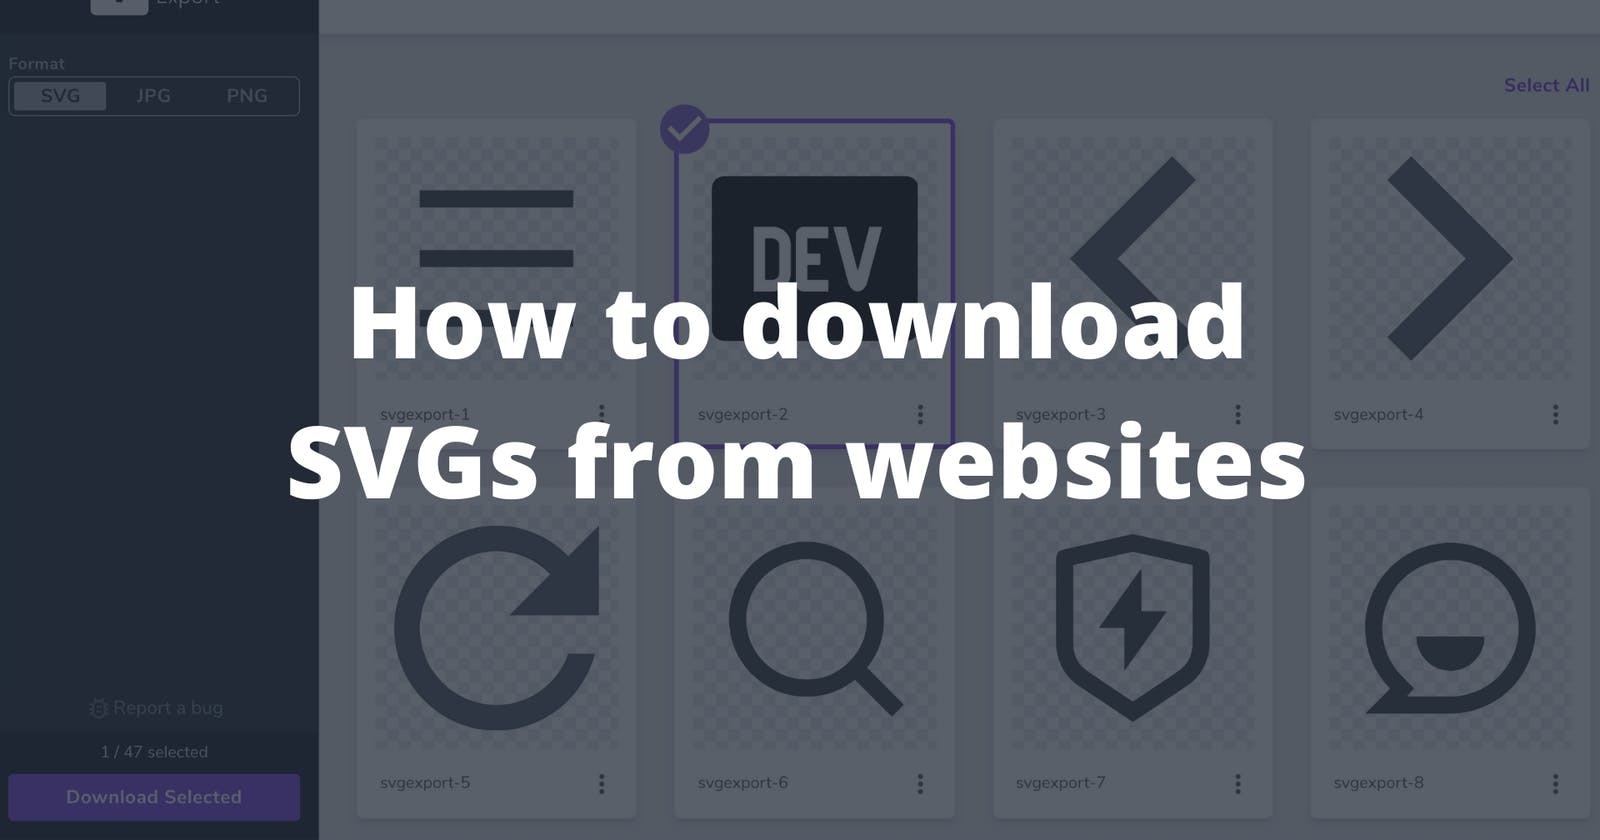 The easiest way to download SVGs from a website